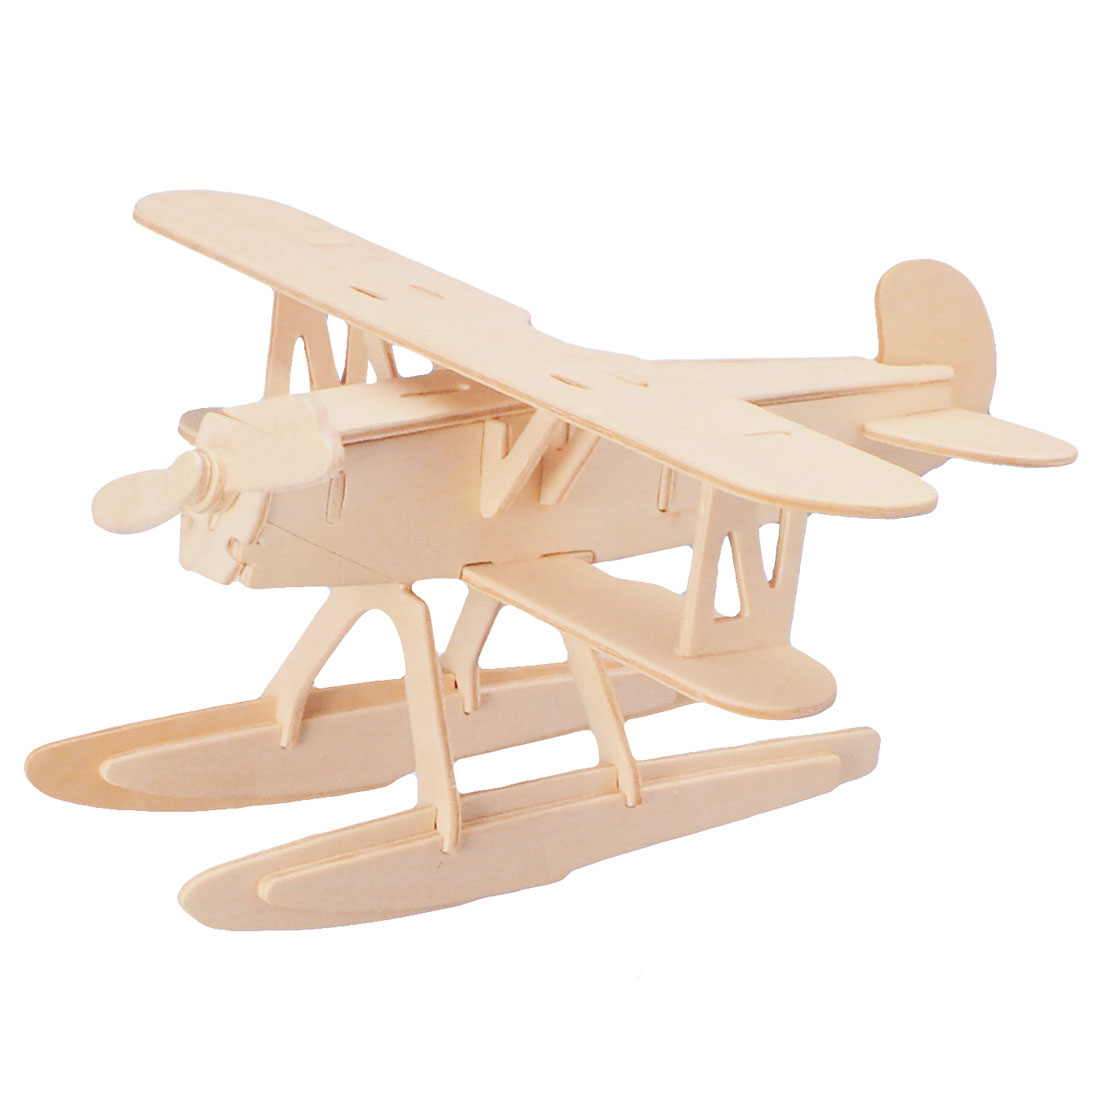 DIY 3D Wooden Heinkel HE 51 Model Float Plane Woodcraft Construction Kit